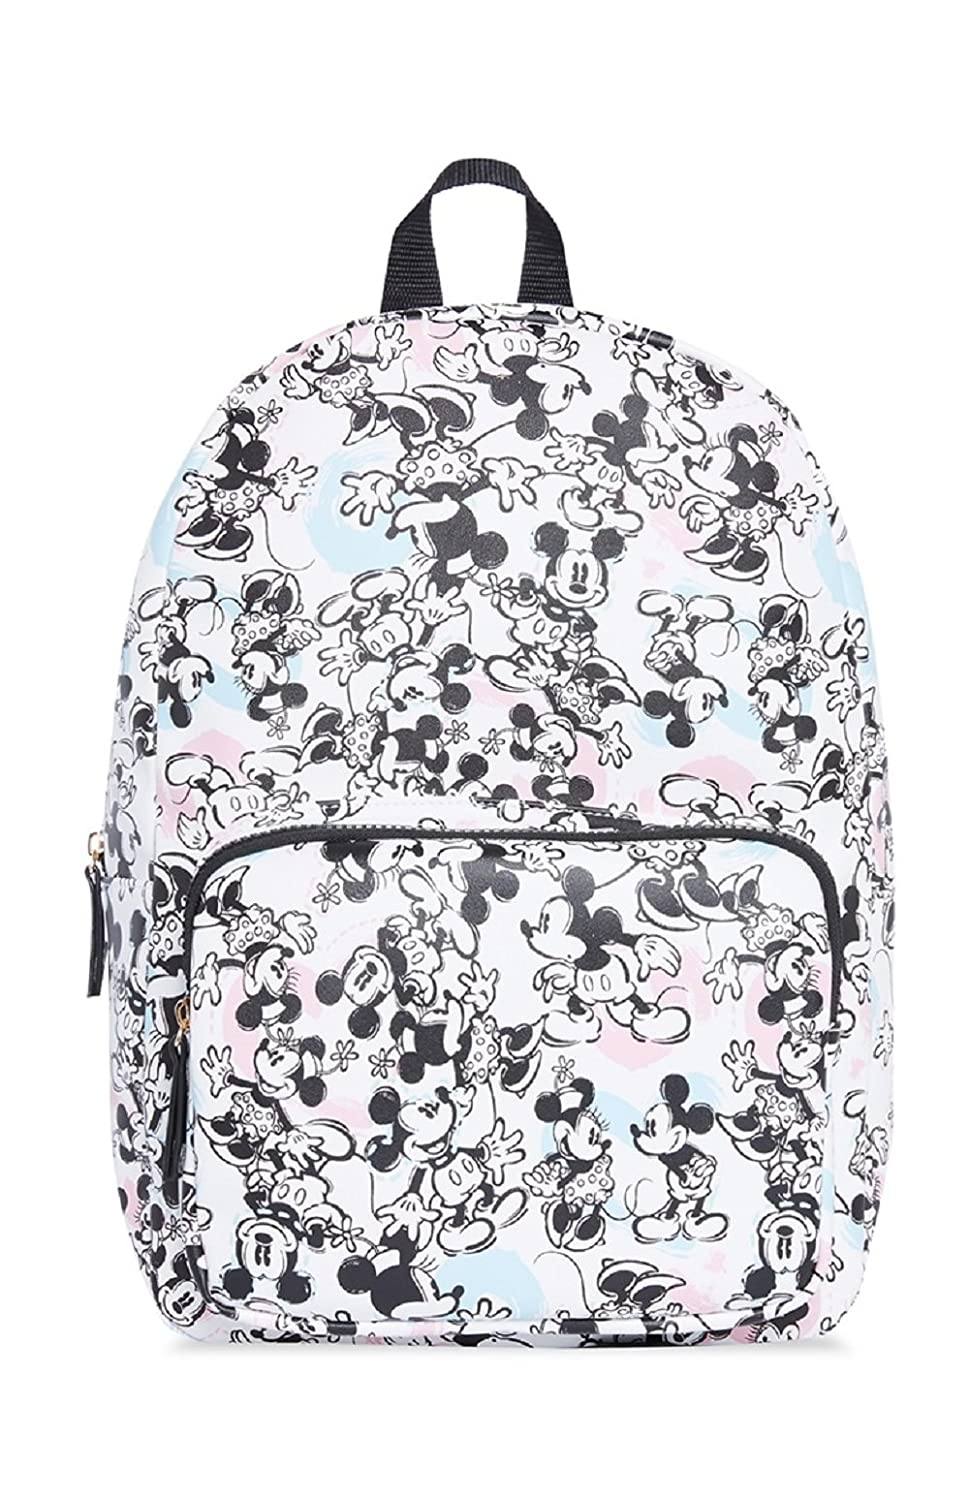 Brand New Disney Primark Mickey Minnie Mouse Backpack Rucksack Bag   Amazon.co.uk  Shoes   Bags